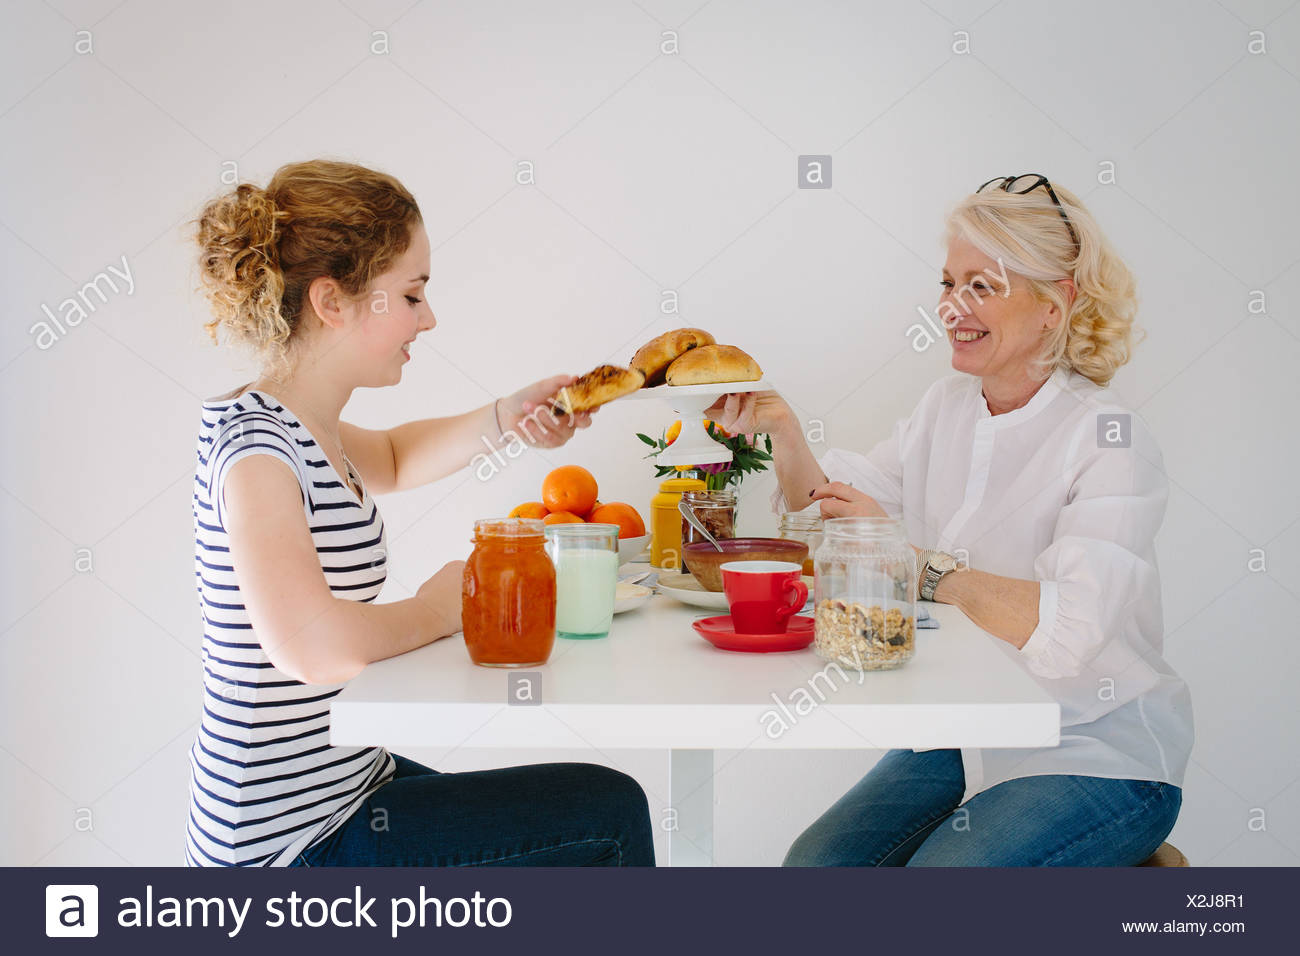 Mother and teenage daughter sharing breakfast - Stock Image